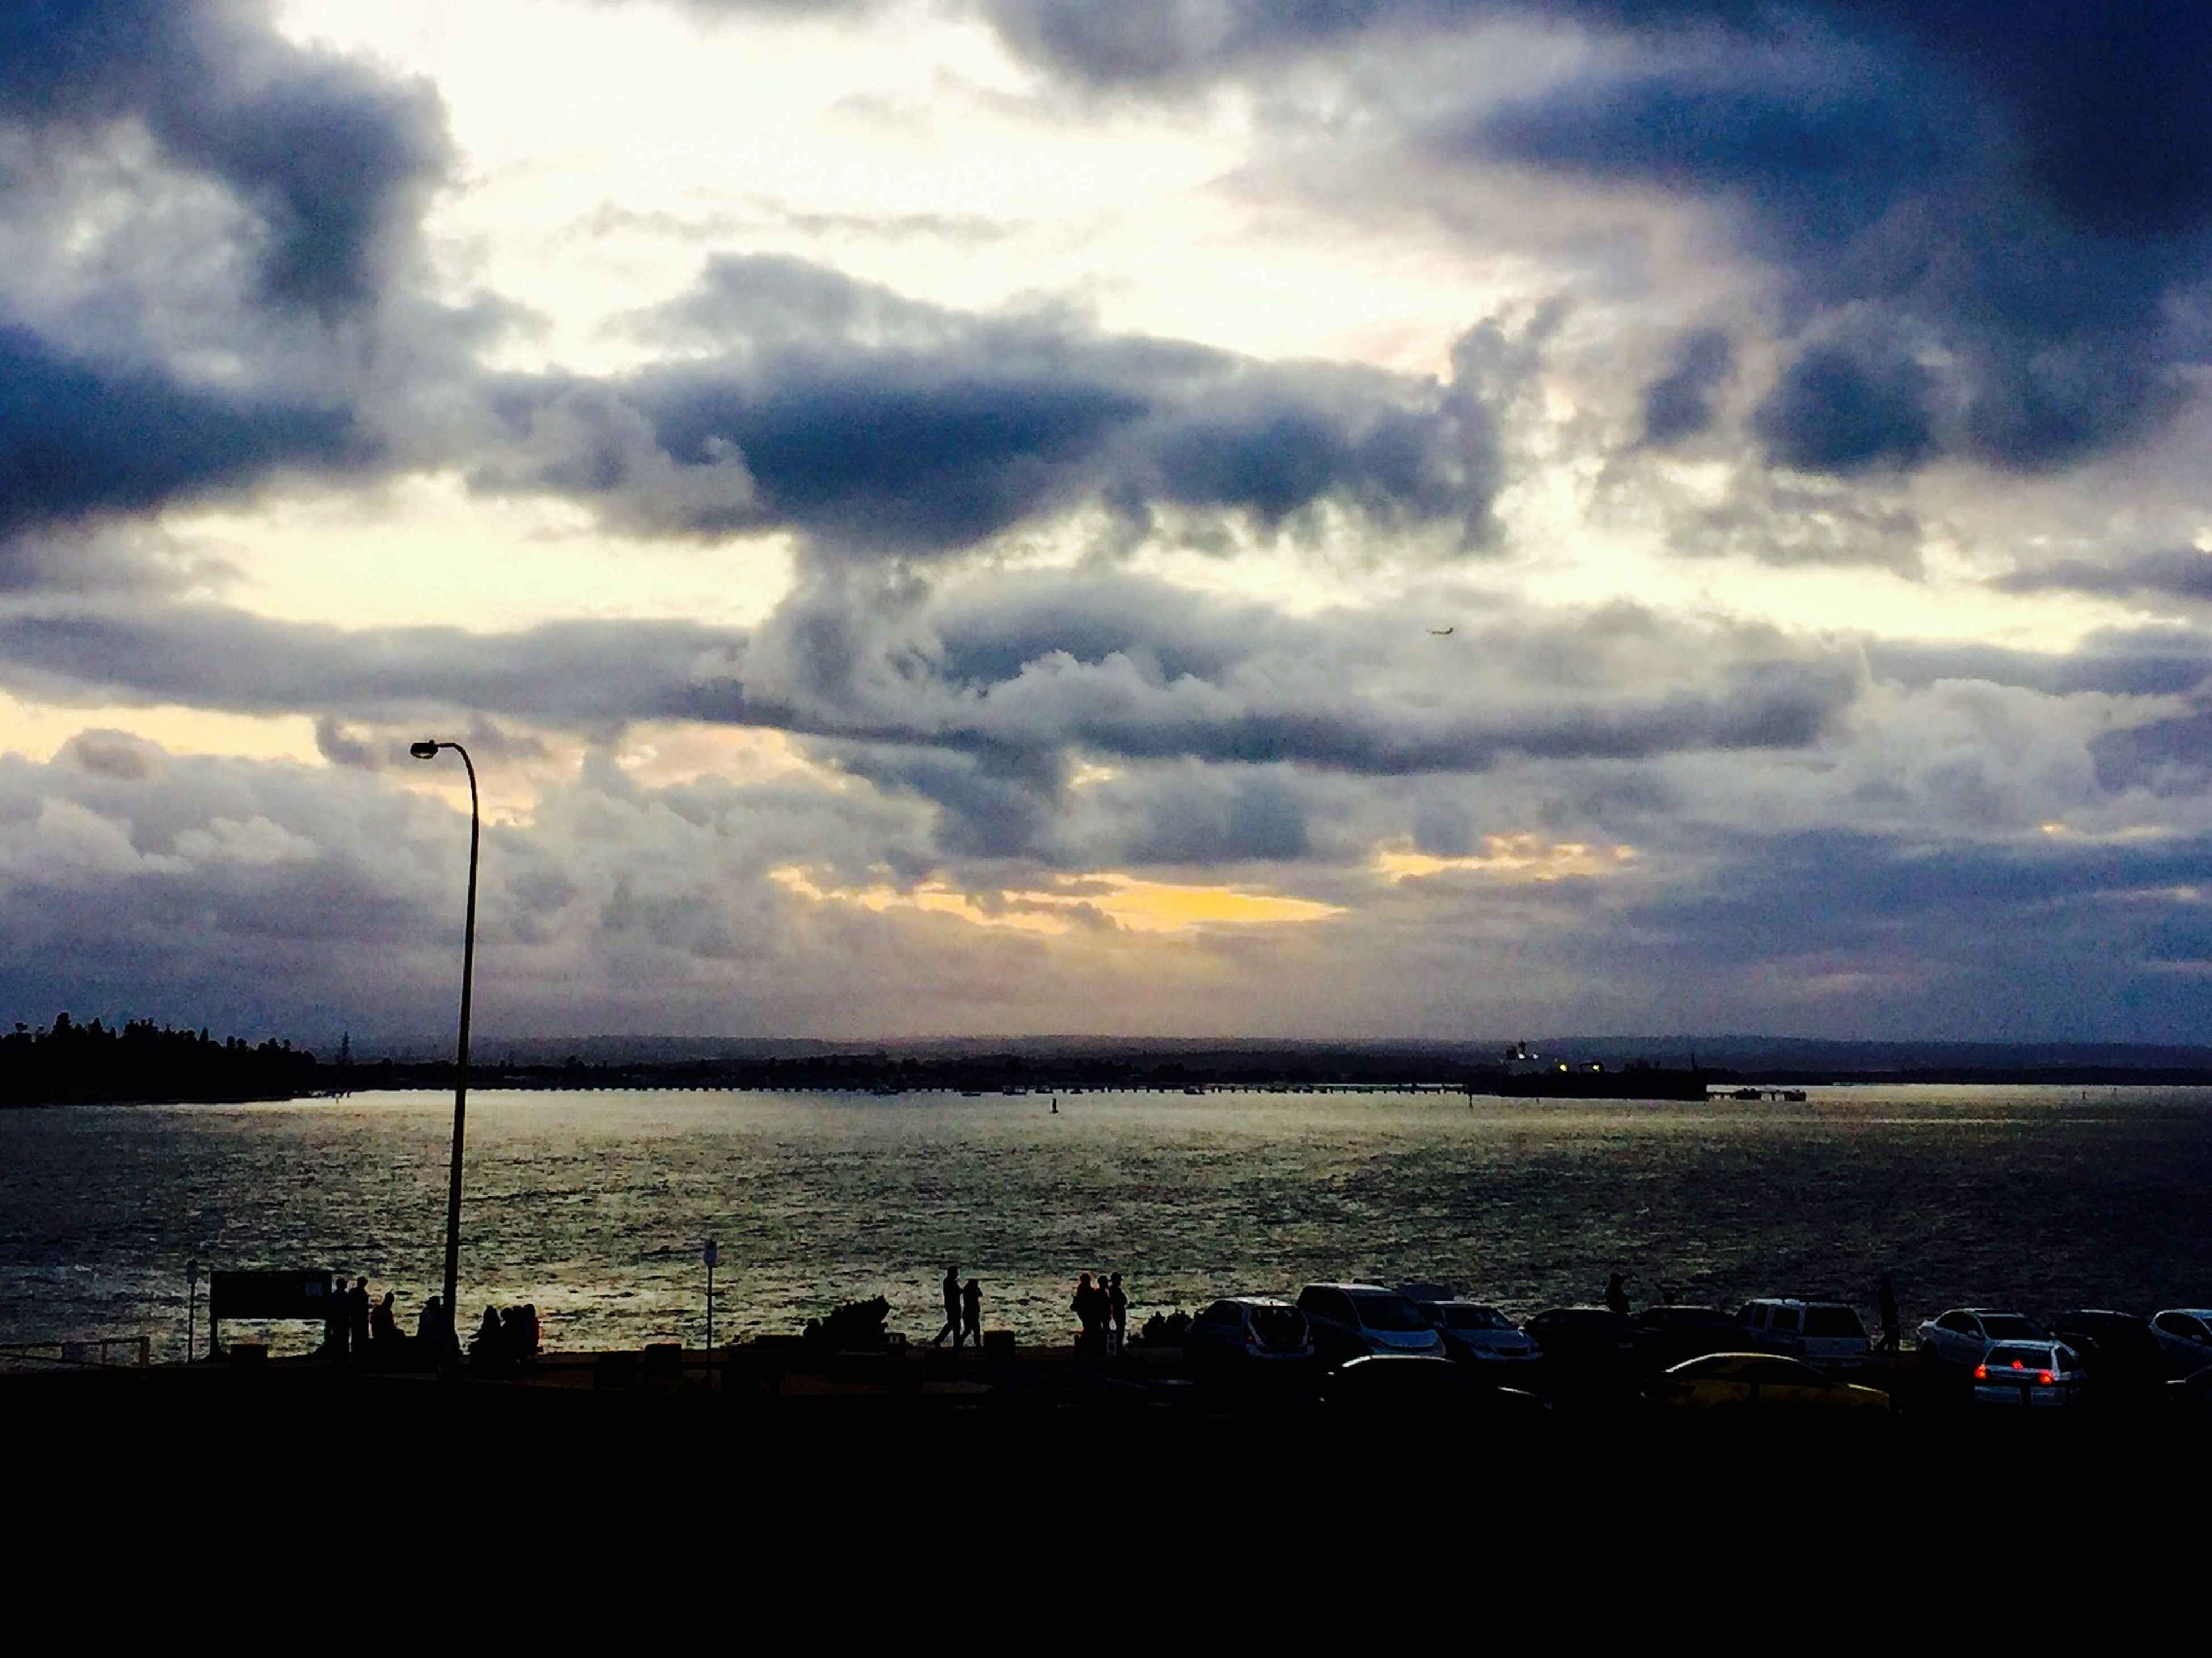 sky, cloud - sky, cloudy, tranquility, scenics, tranquil scene, beauty in nature, sunset, water, silhouette, cloud, nature, weather, dusk, street light, idyllic, landscape, sea, outdoors, overcast